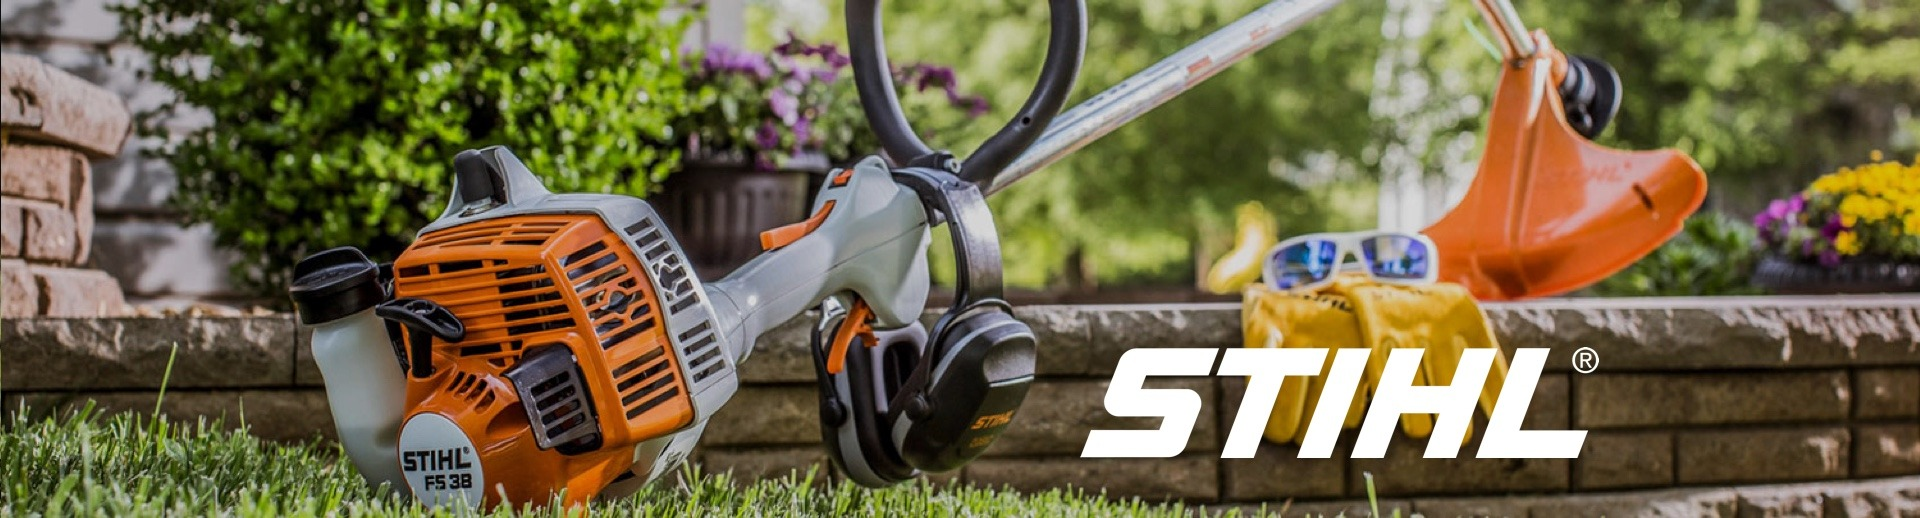 Stihl logo and weed eater with gloves and sunglasses